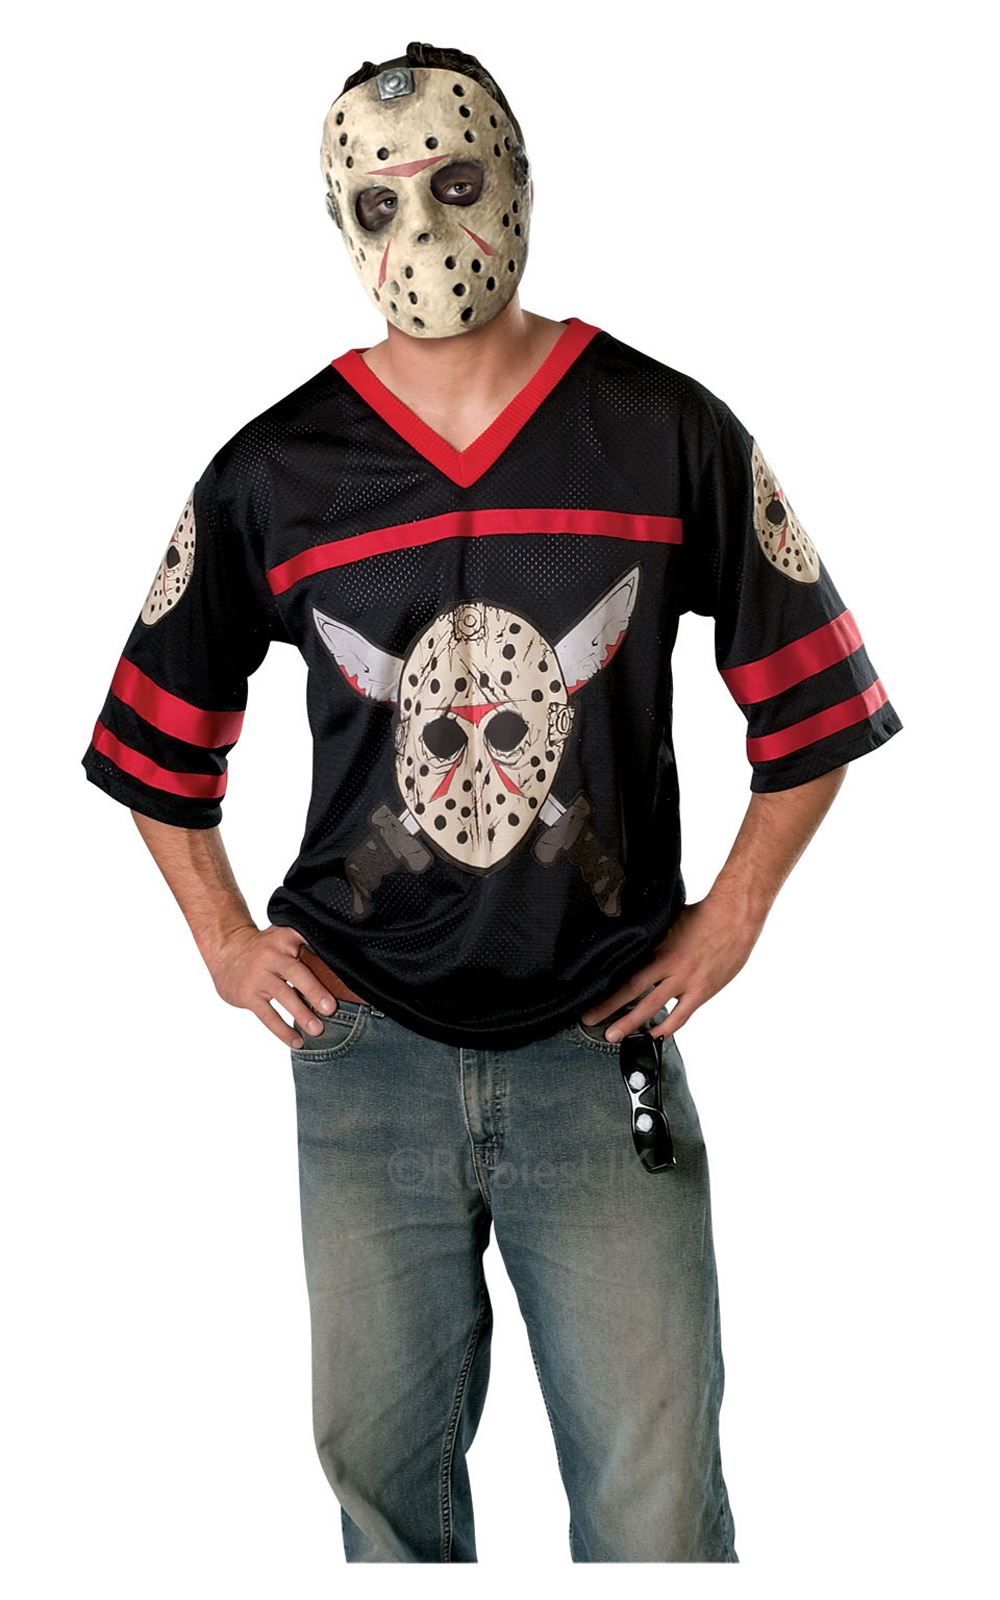 mens jason voorhees friday 13th hockey shirt mask halloween fancy